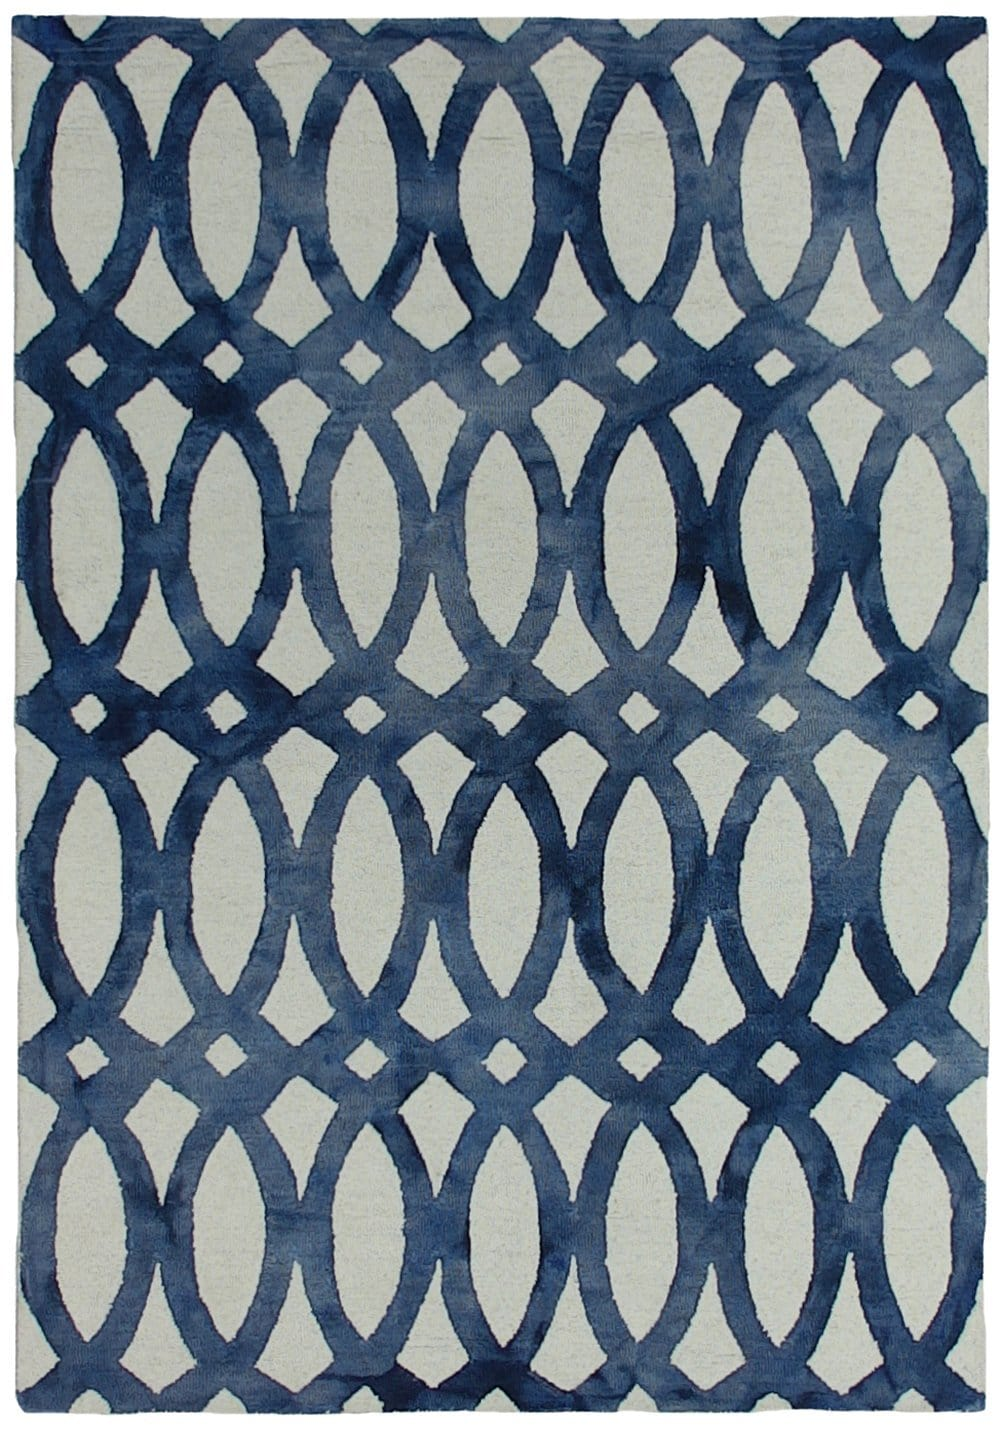 Marbella Navy Blue and White Abstract Wool Rug